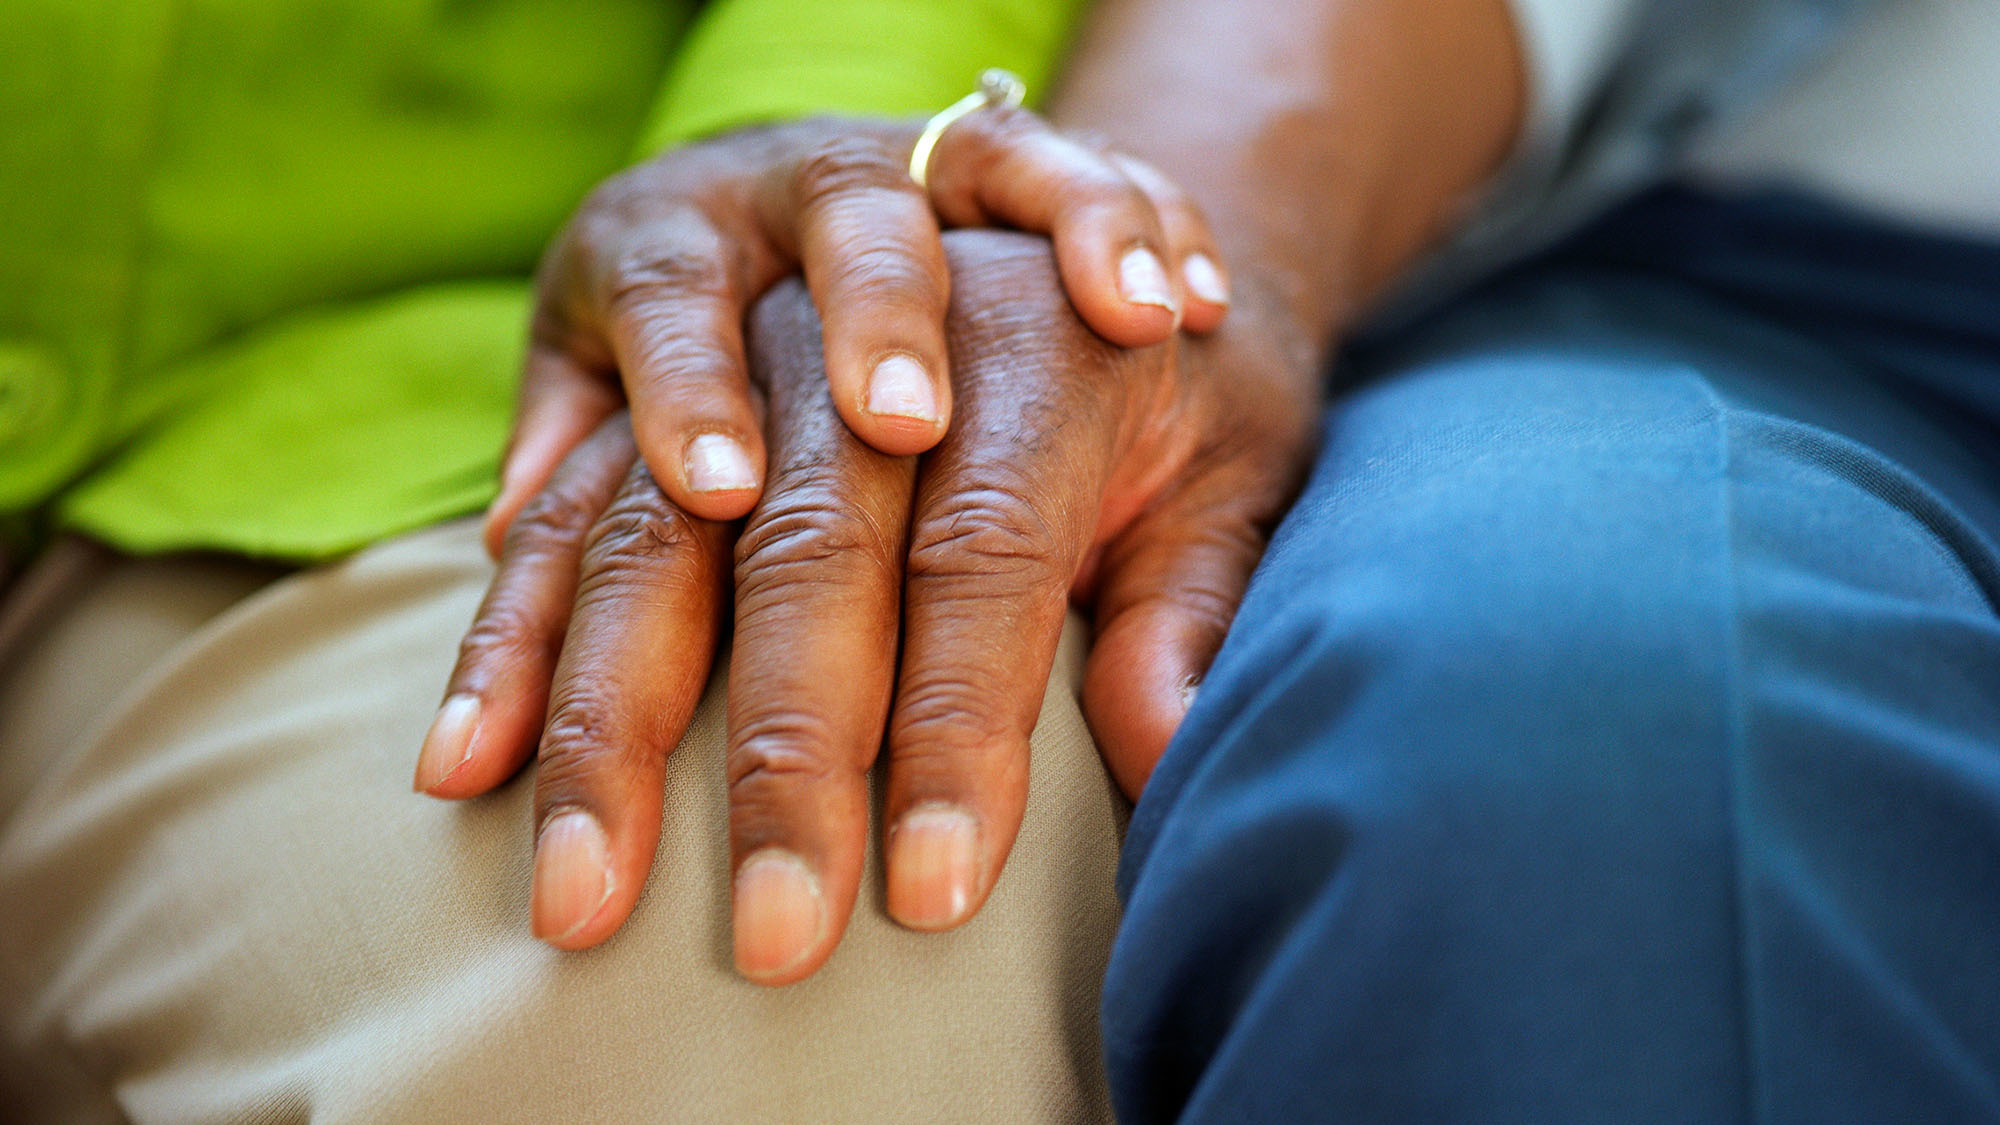 New research finds that African-Americans who grow up in harsh environments and endure stressful experiences are much more likely to develop Alzheimer